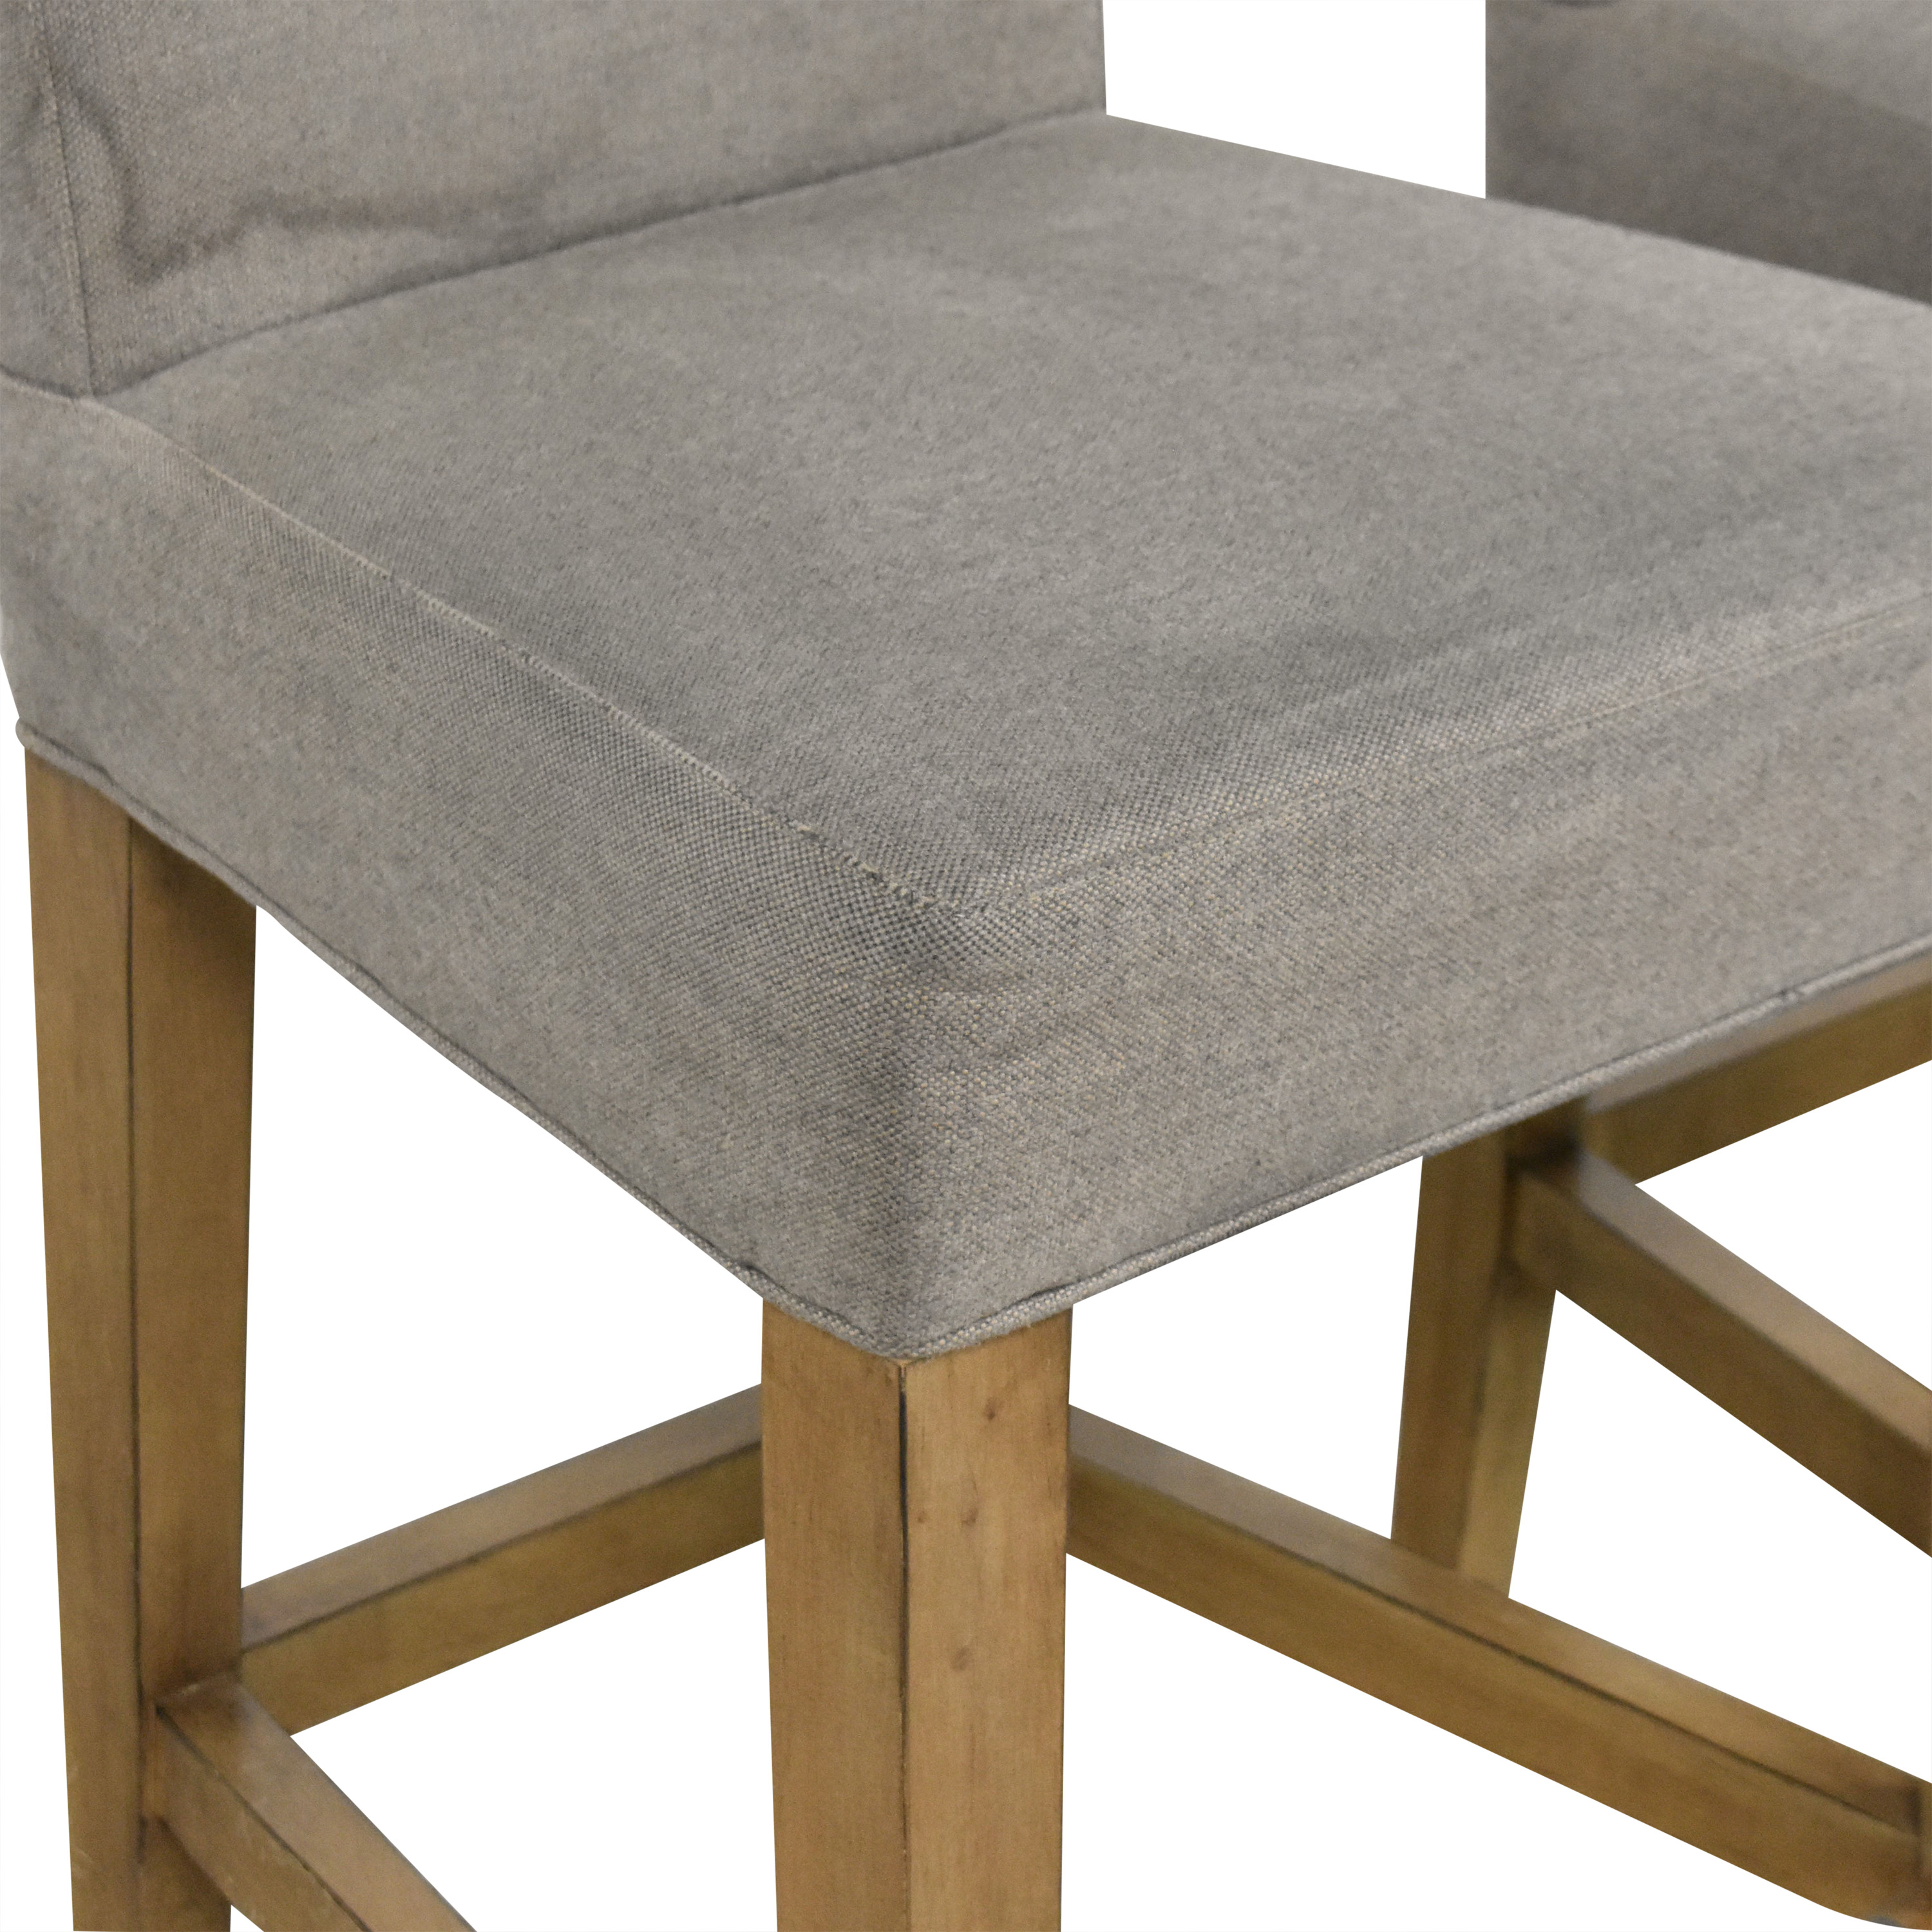 buy Lillian August Couture Upholstered Counter Stools Lillian August